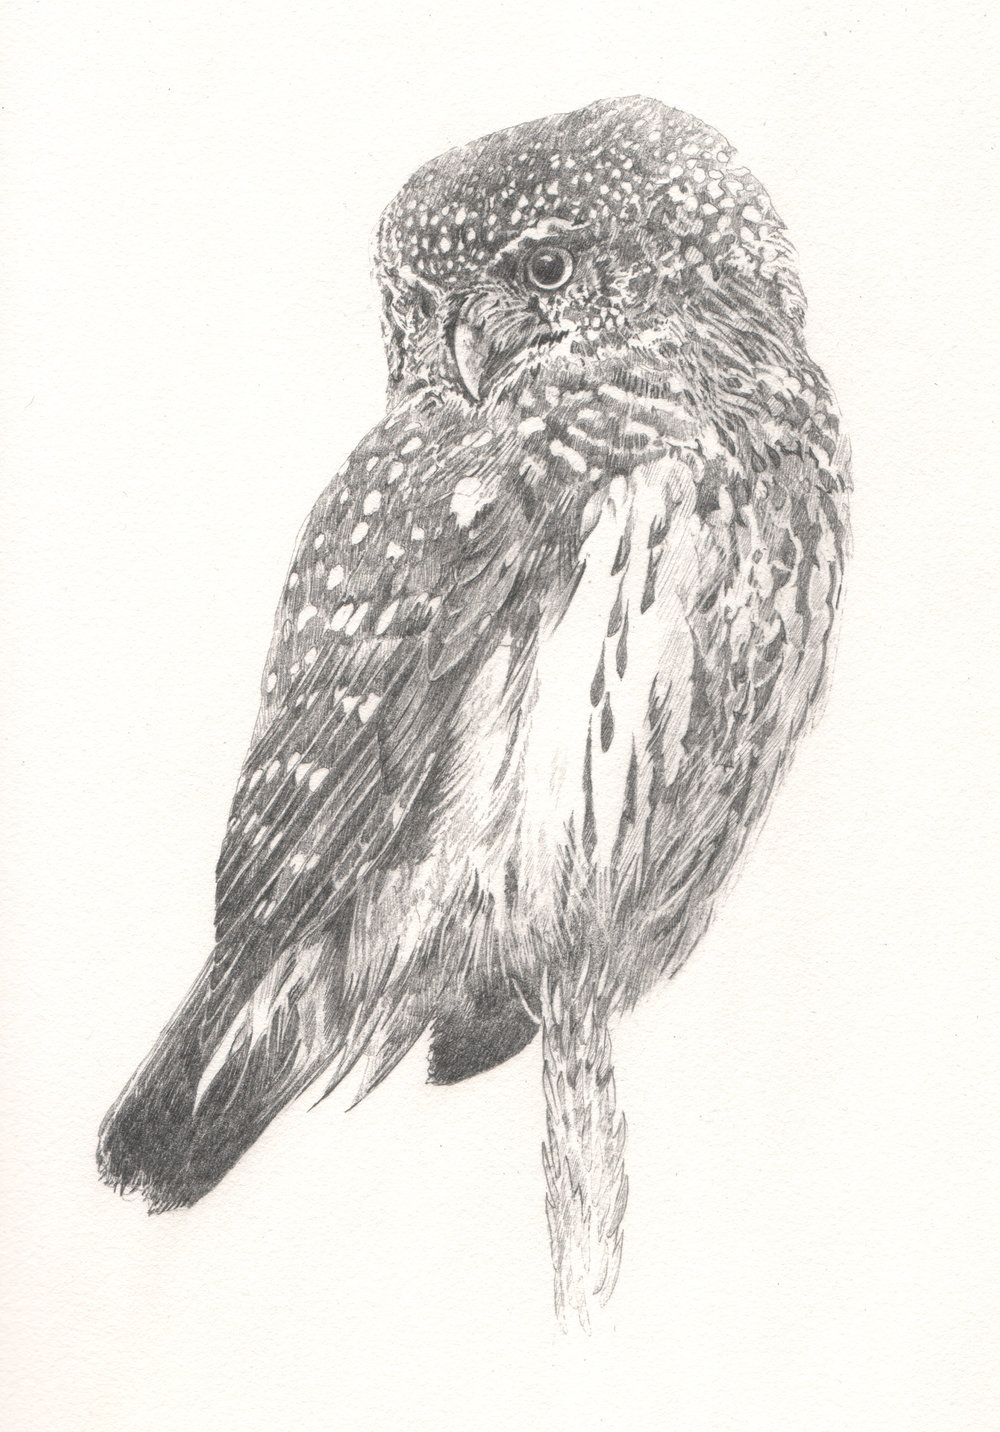 Pygmy Owl - Study for author Miriam Darlington